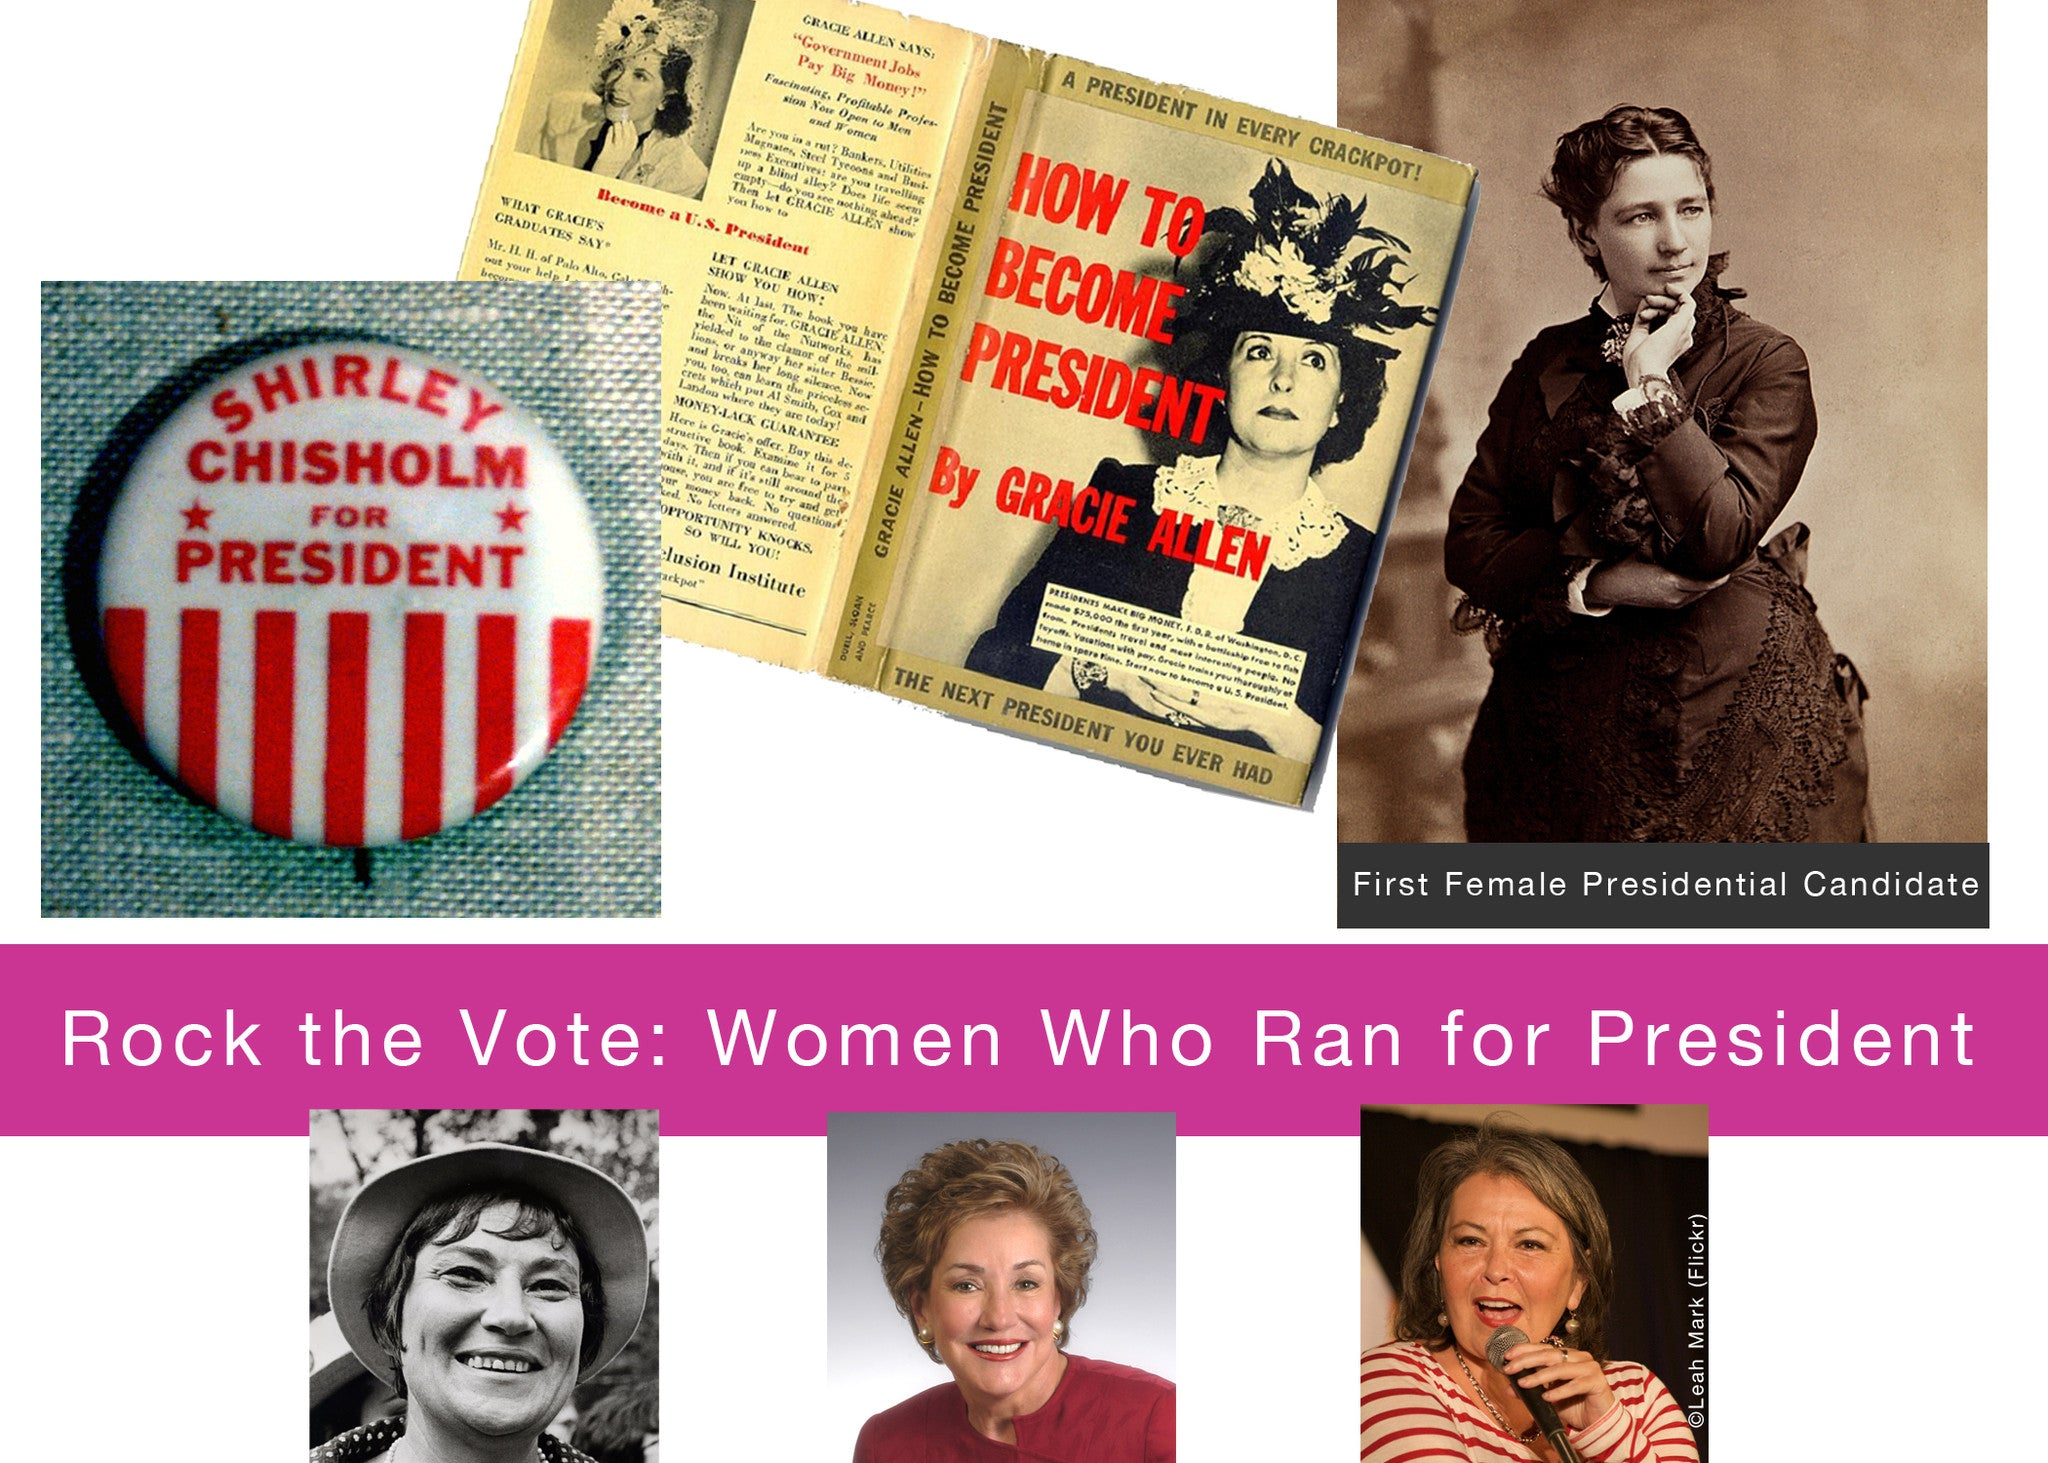 Rock the Vote: Women Who Ran for President